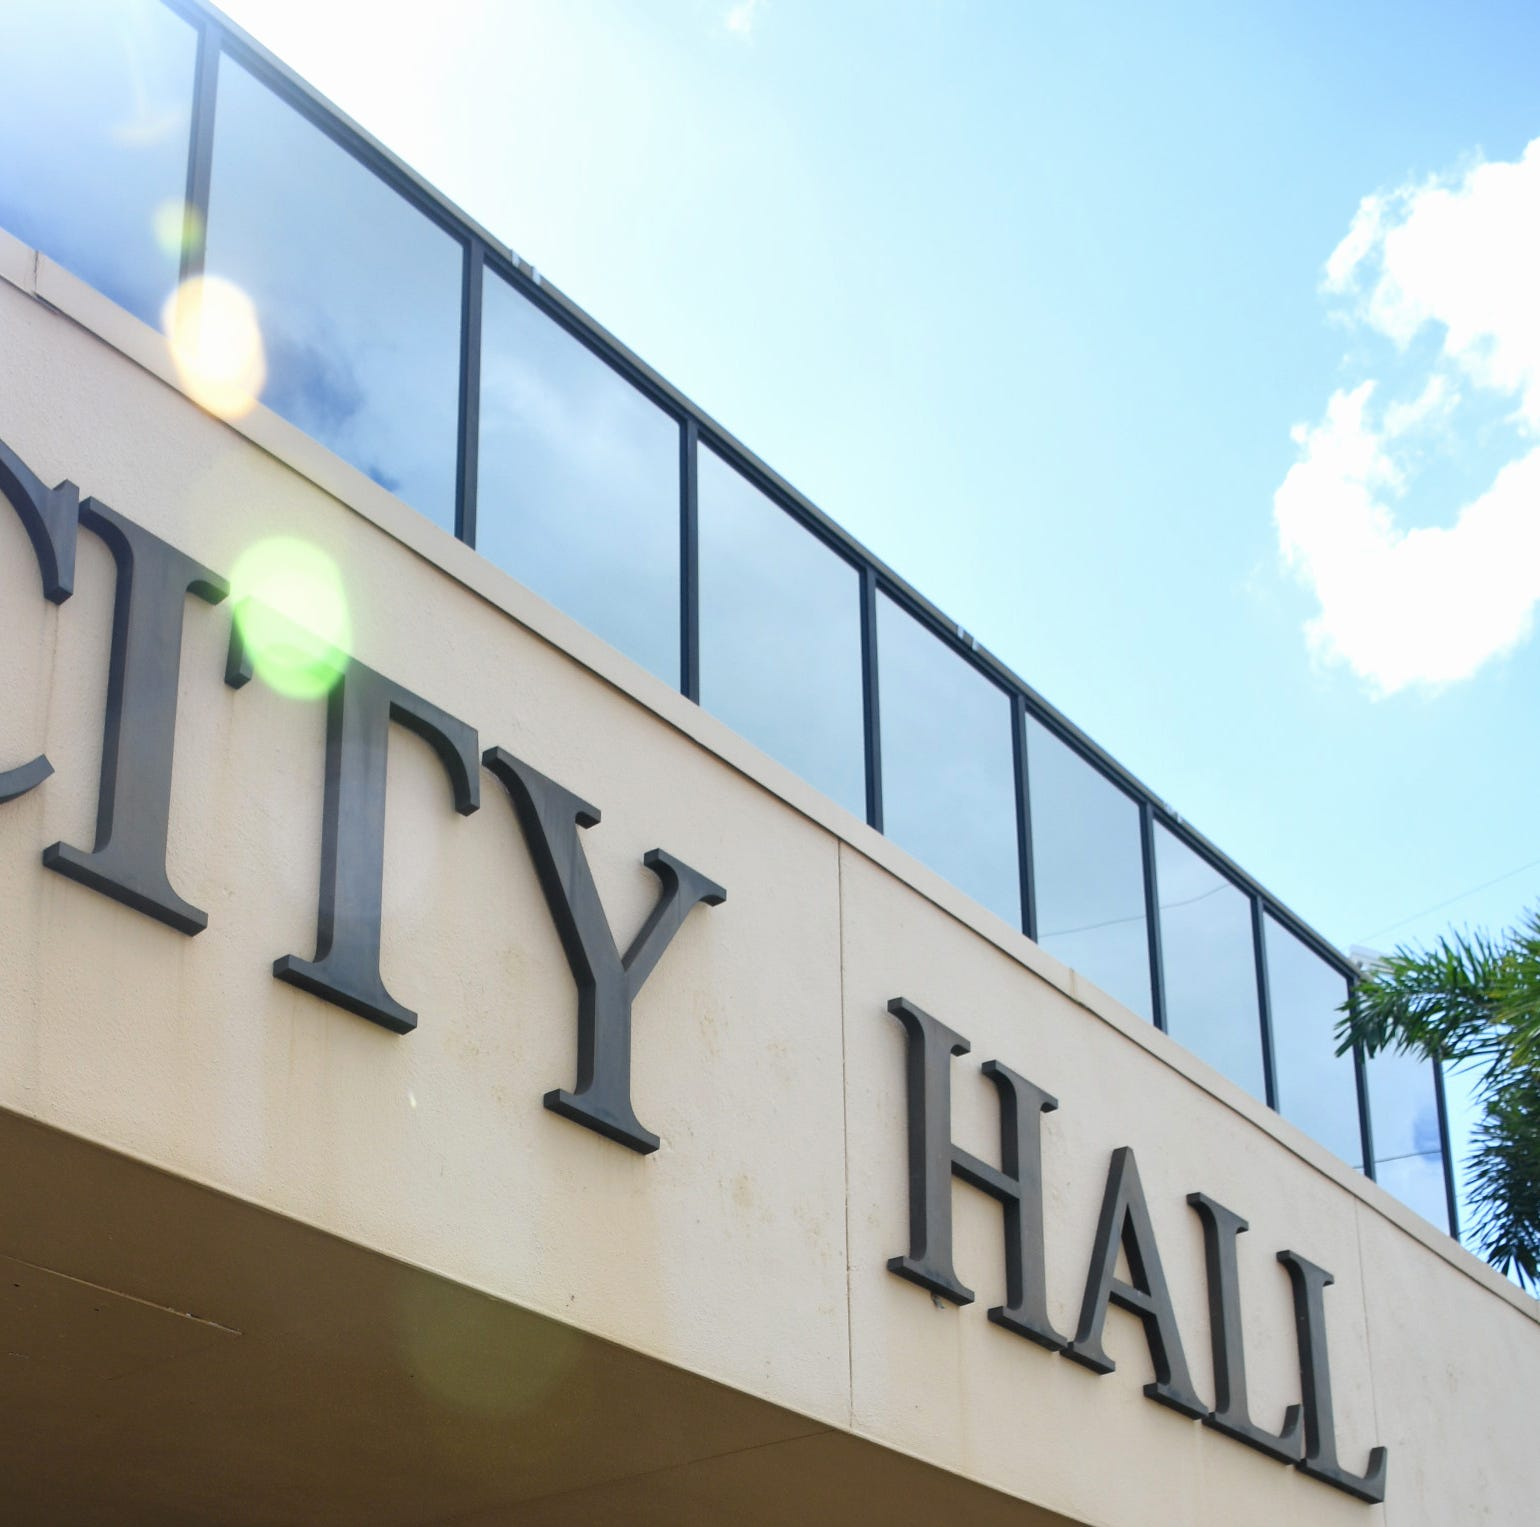 City council meeting to interview Marco Island city manager candidates set for May 7